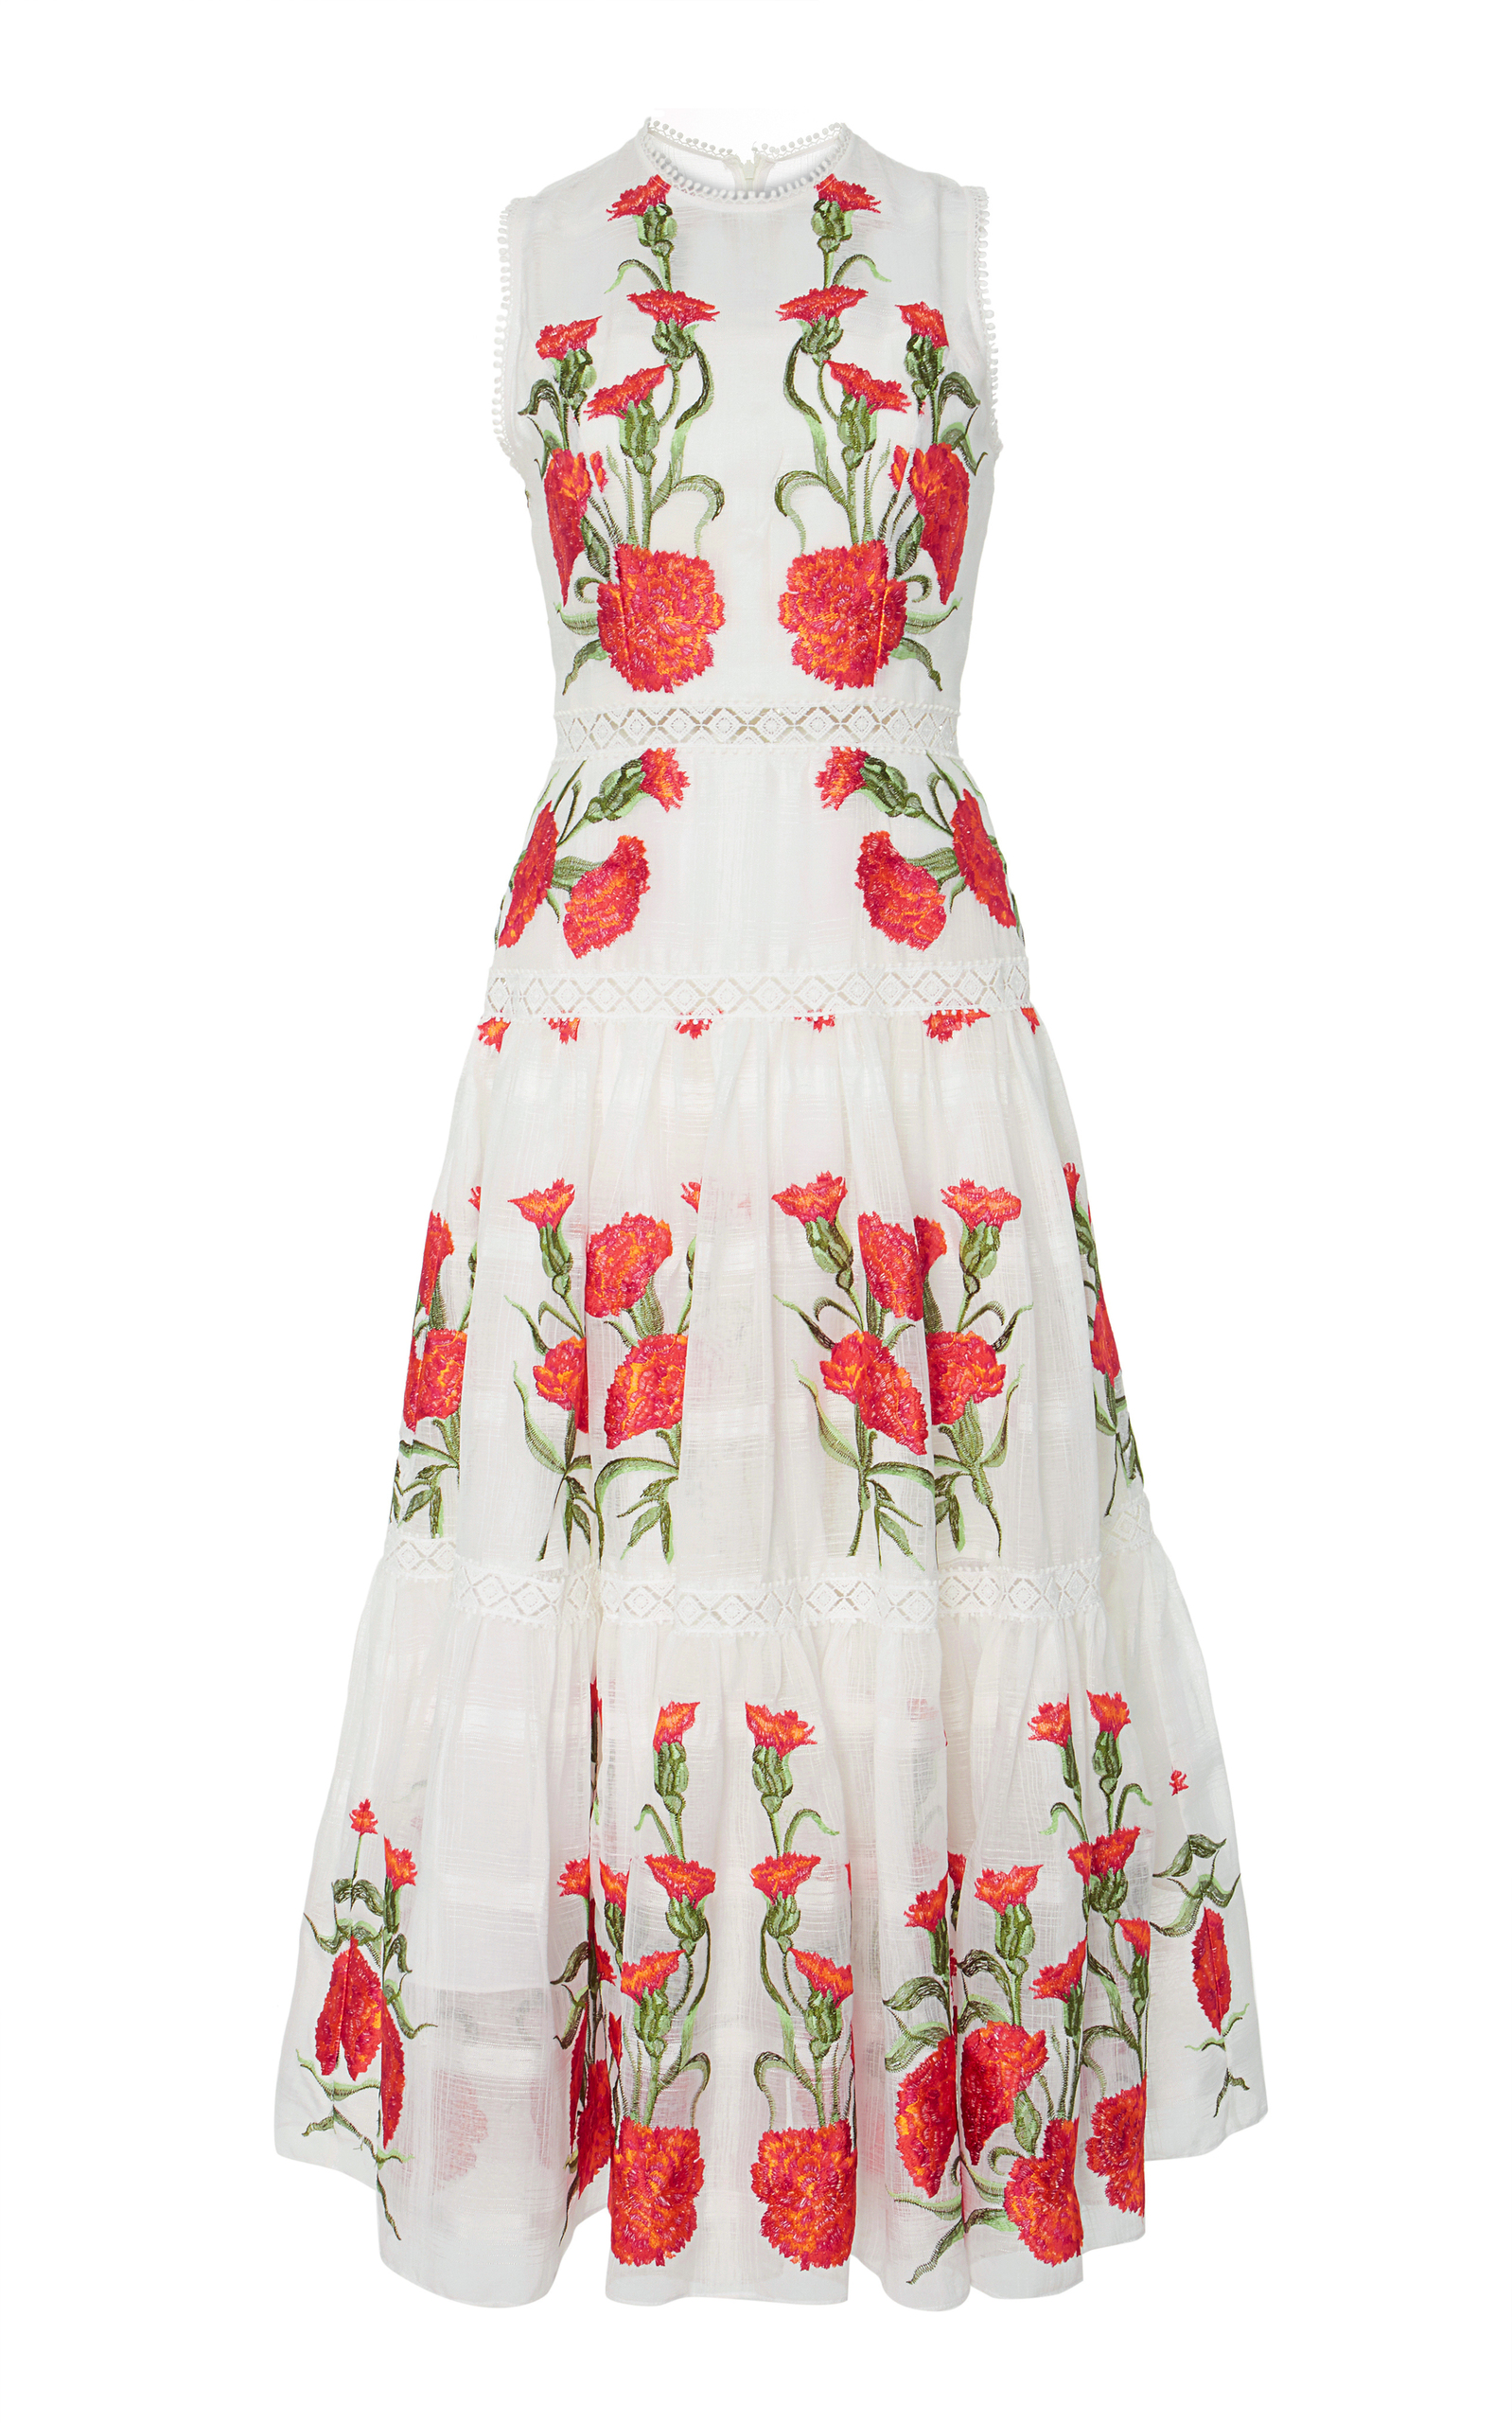 0faf13d28dec23 ALEXIS LEOMIE SLEEVELESS FLORAL-EMBROIDERED DRESS